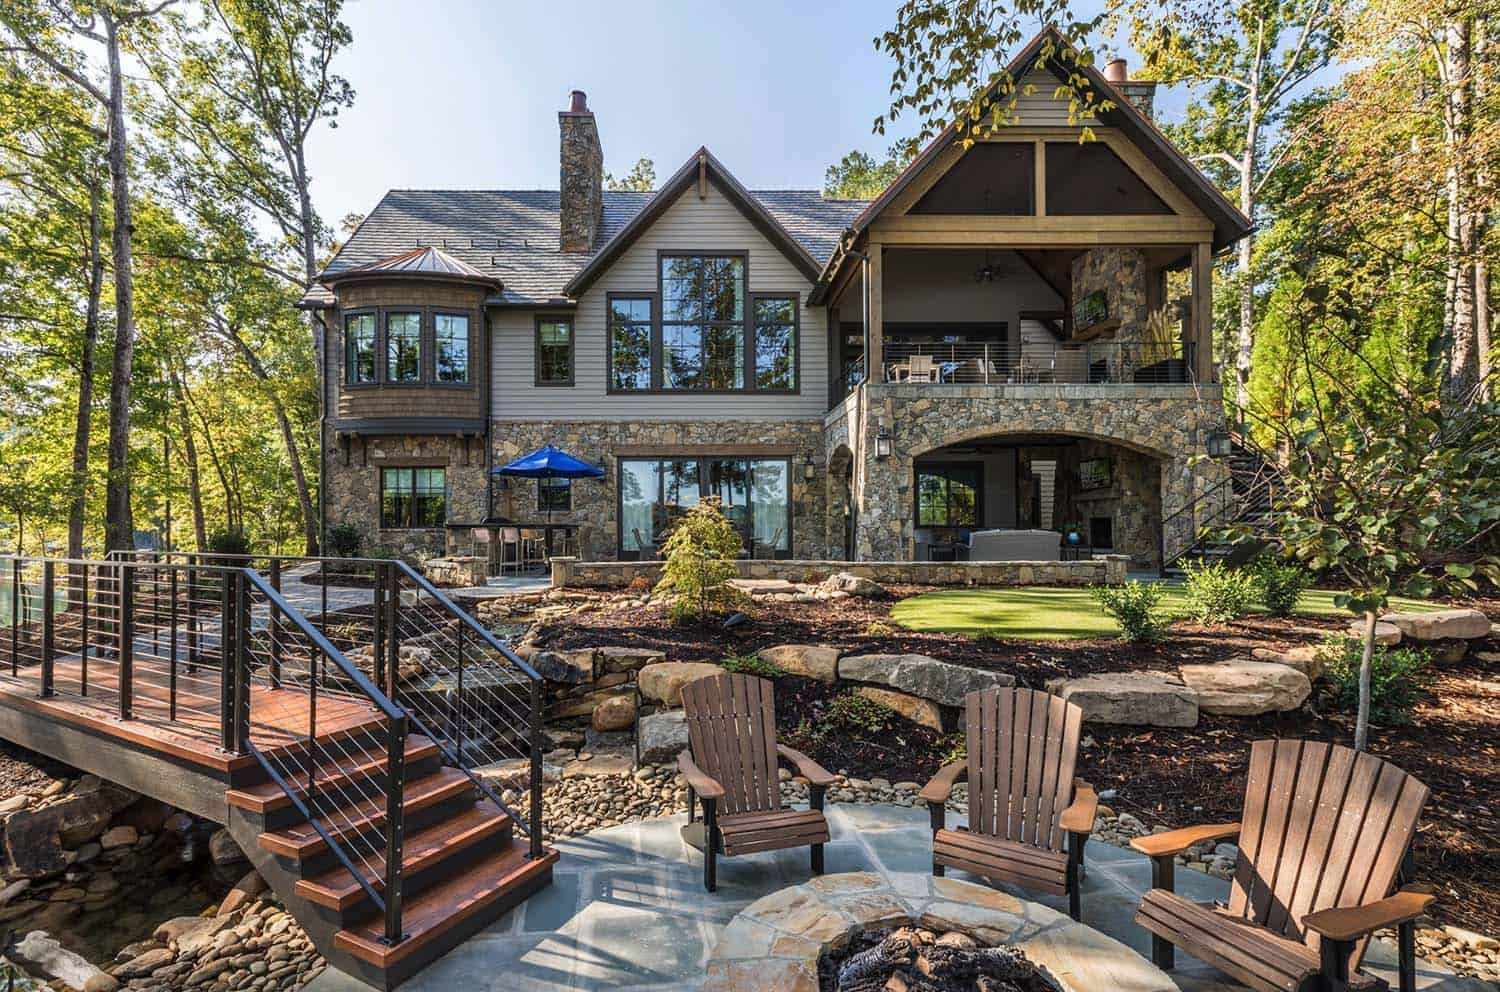 Beautiful rustic home surrounded by a tranquil setting on Lake Keowee #beautifulhomes